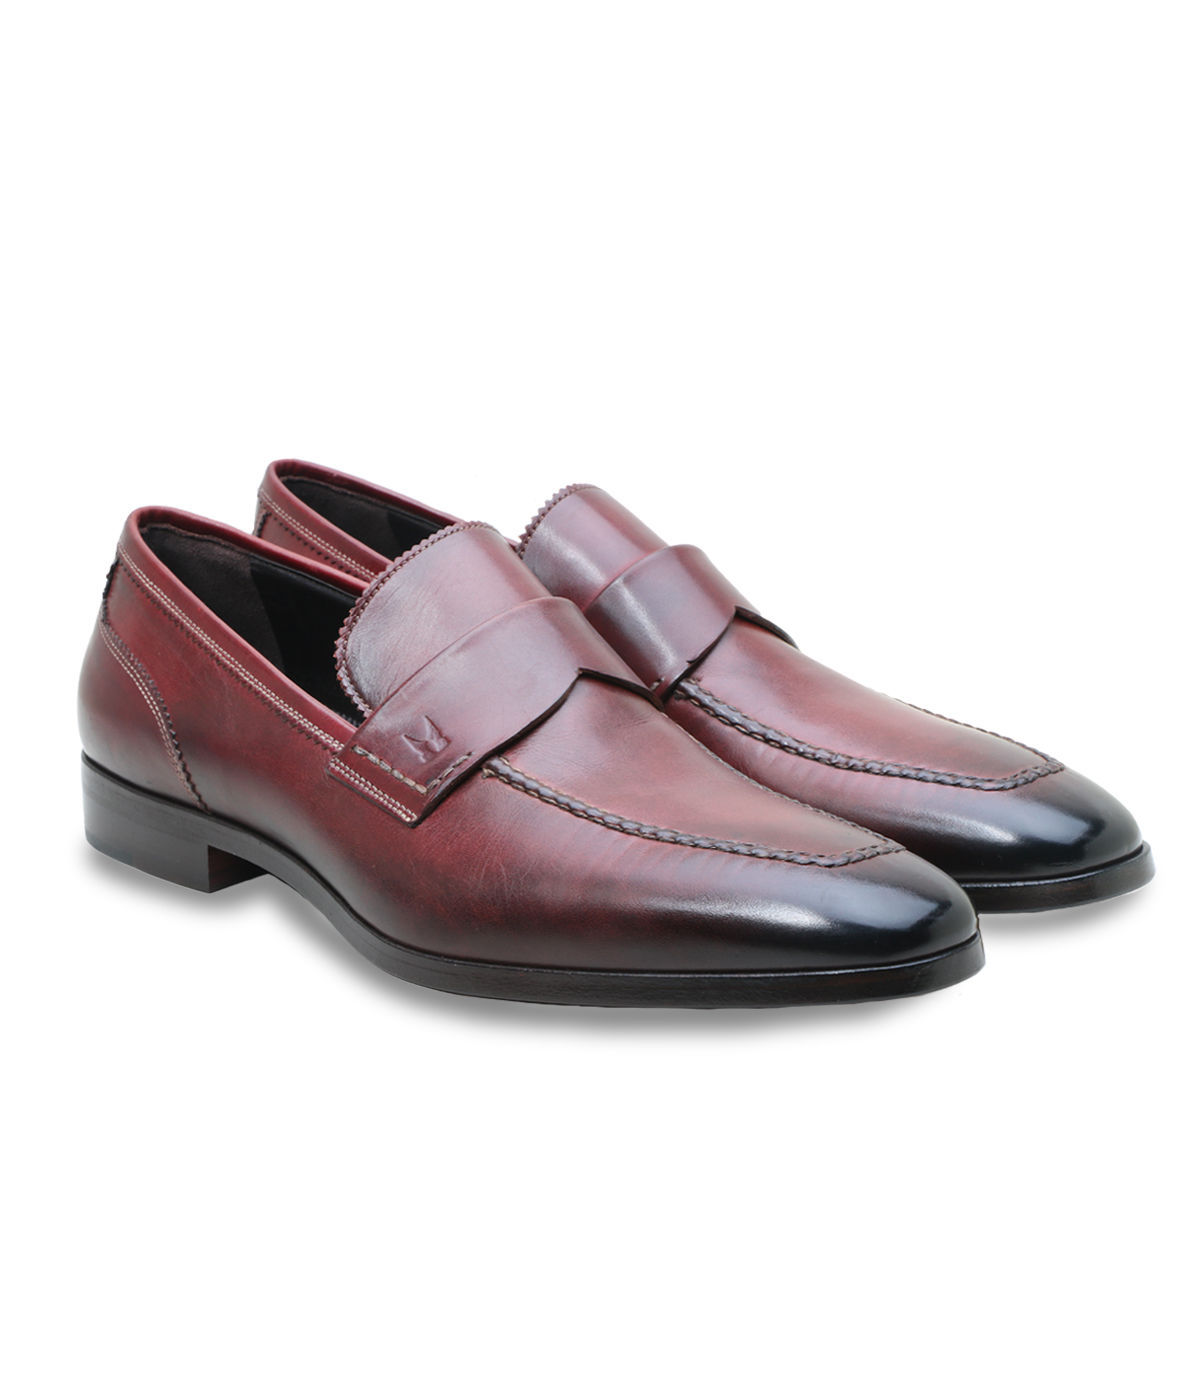 44d6d372842ad Moreschi Men's Brown Leather Loafers Shoes, and 50 similar items